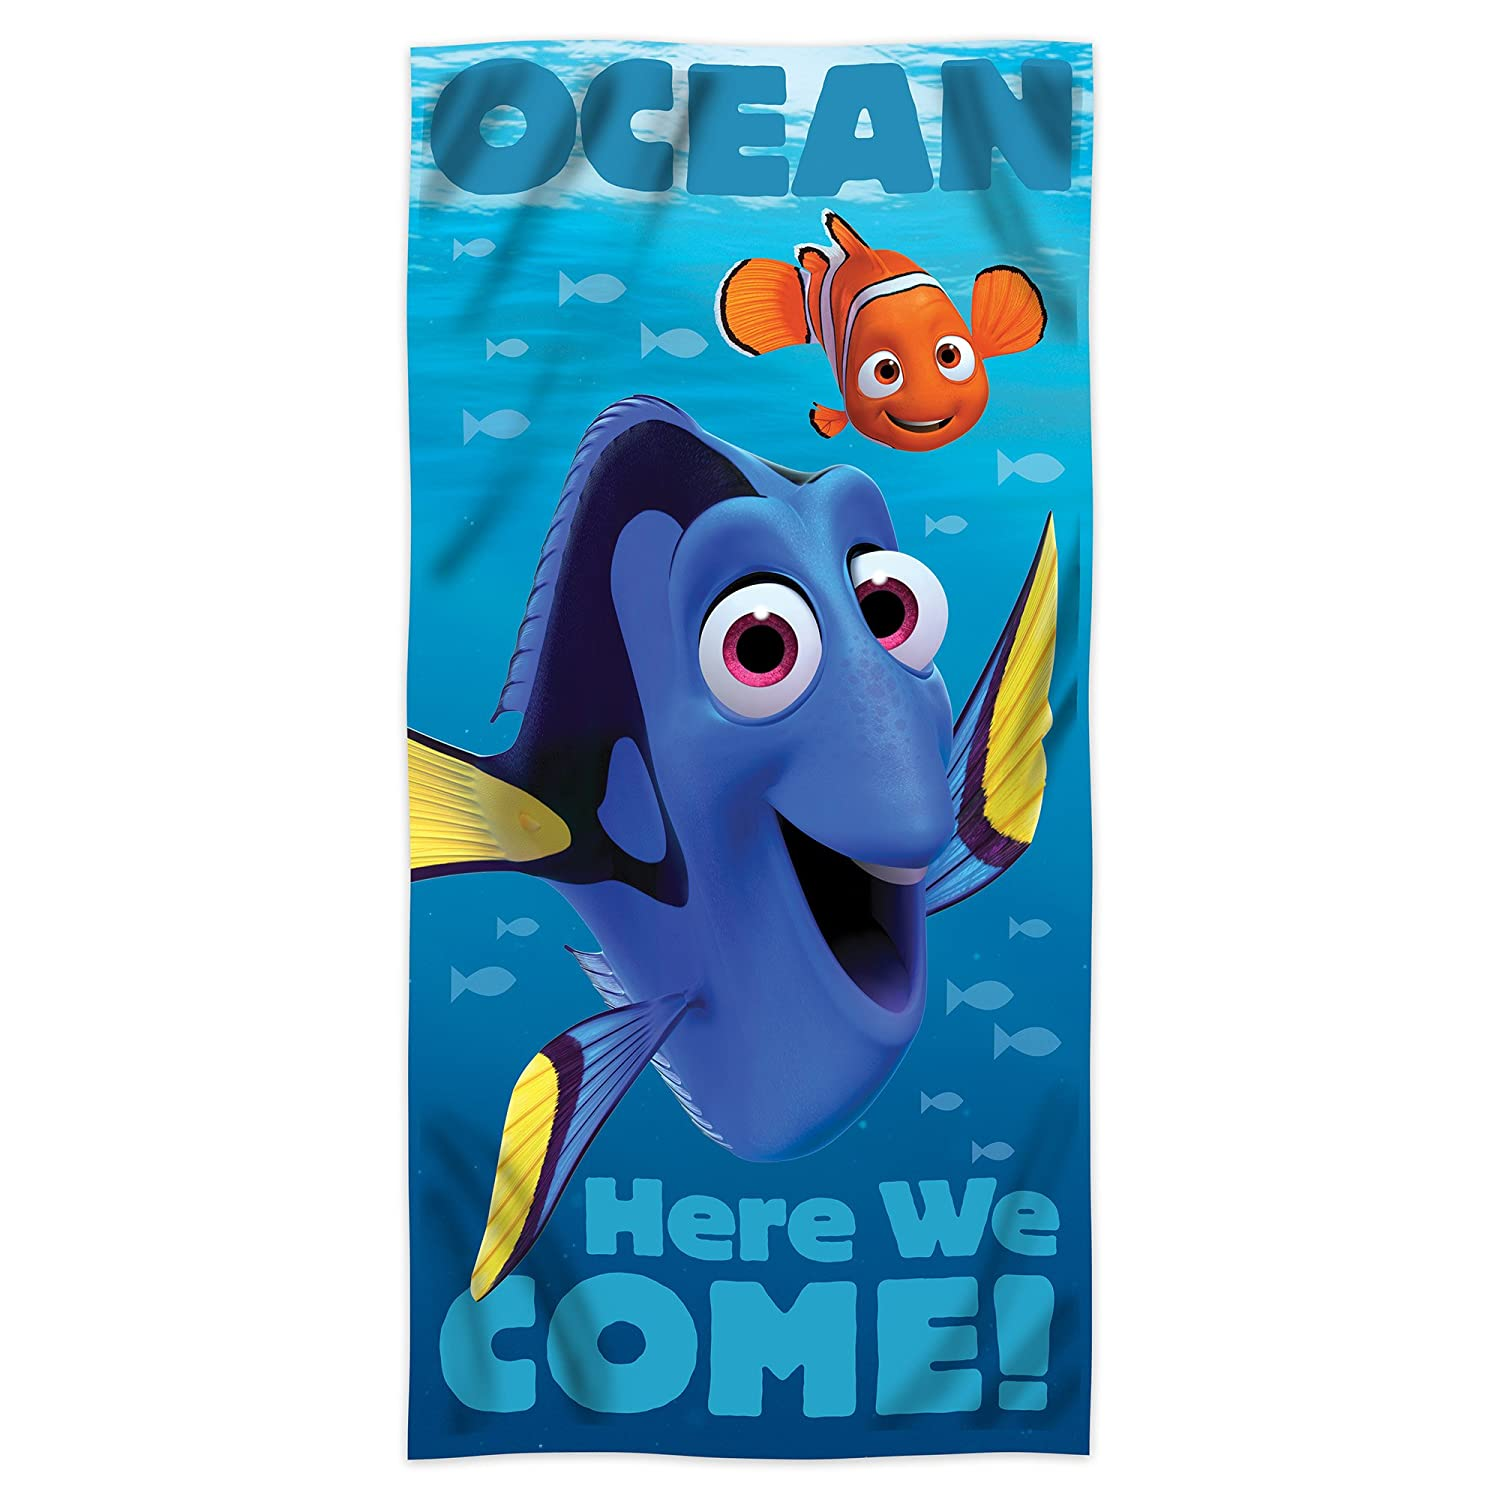 Disney Finding Dory Beach Towel - Ocean Here We Come! 28 x 58 inches